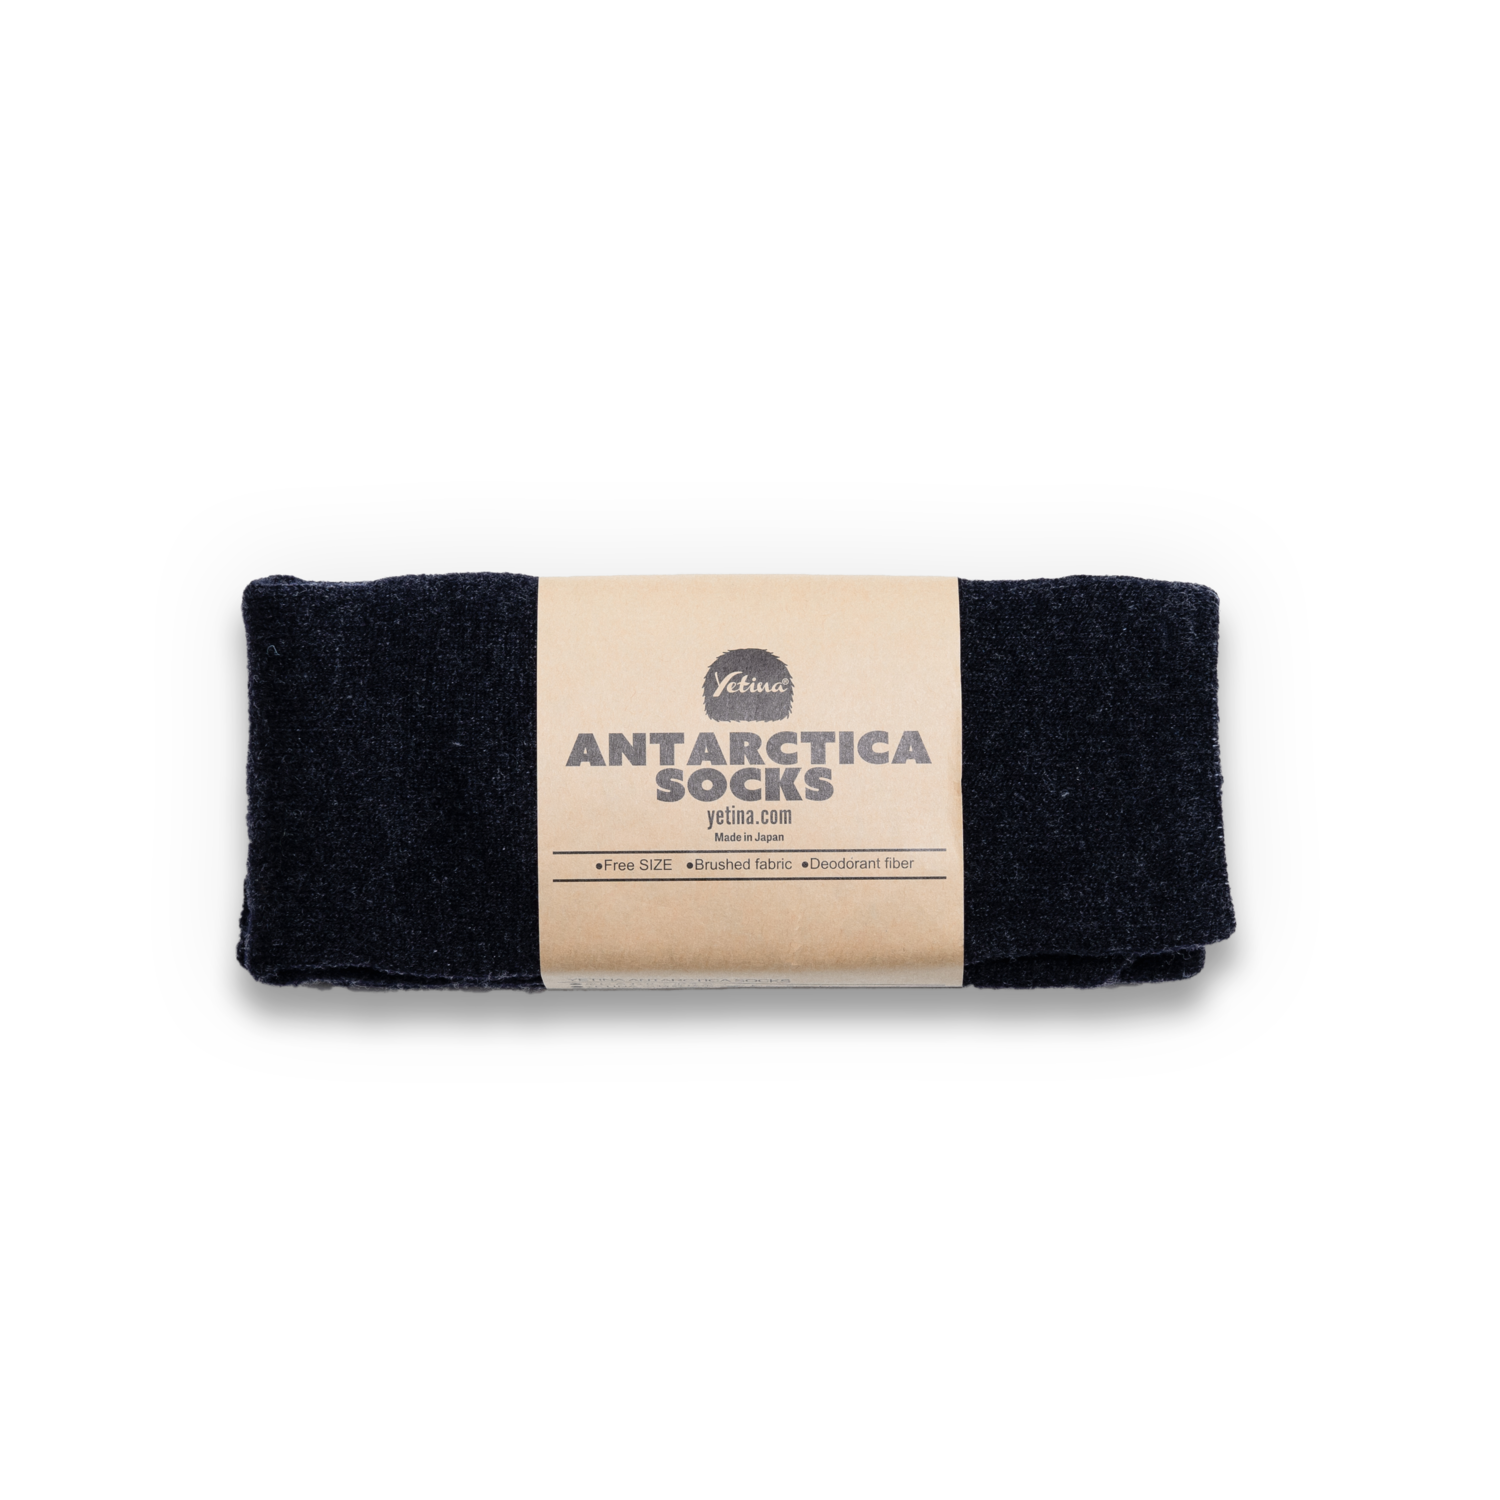 Antarctica Socks dark navy